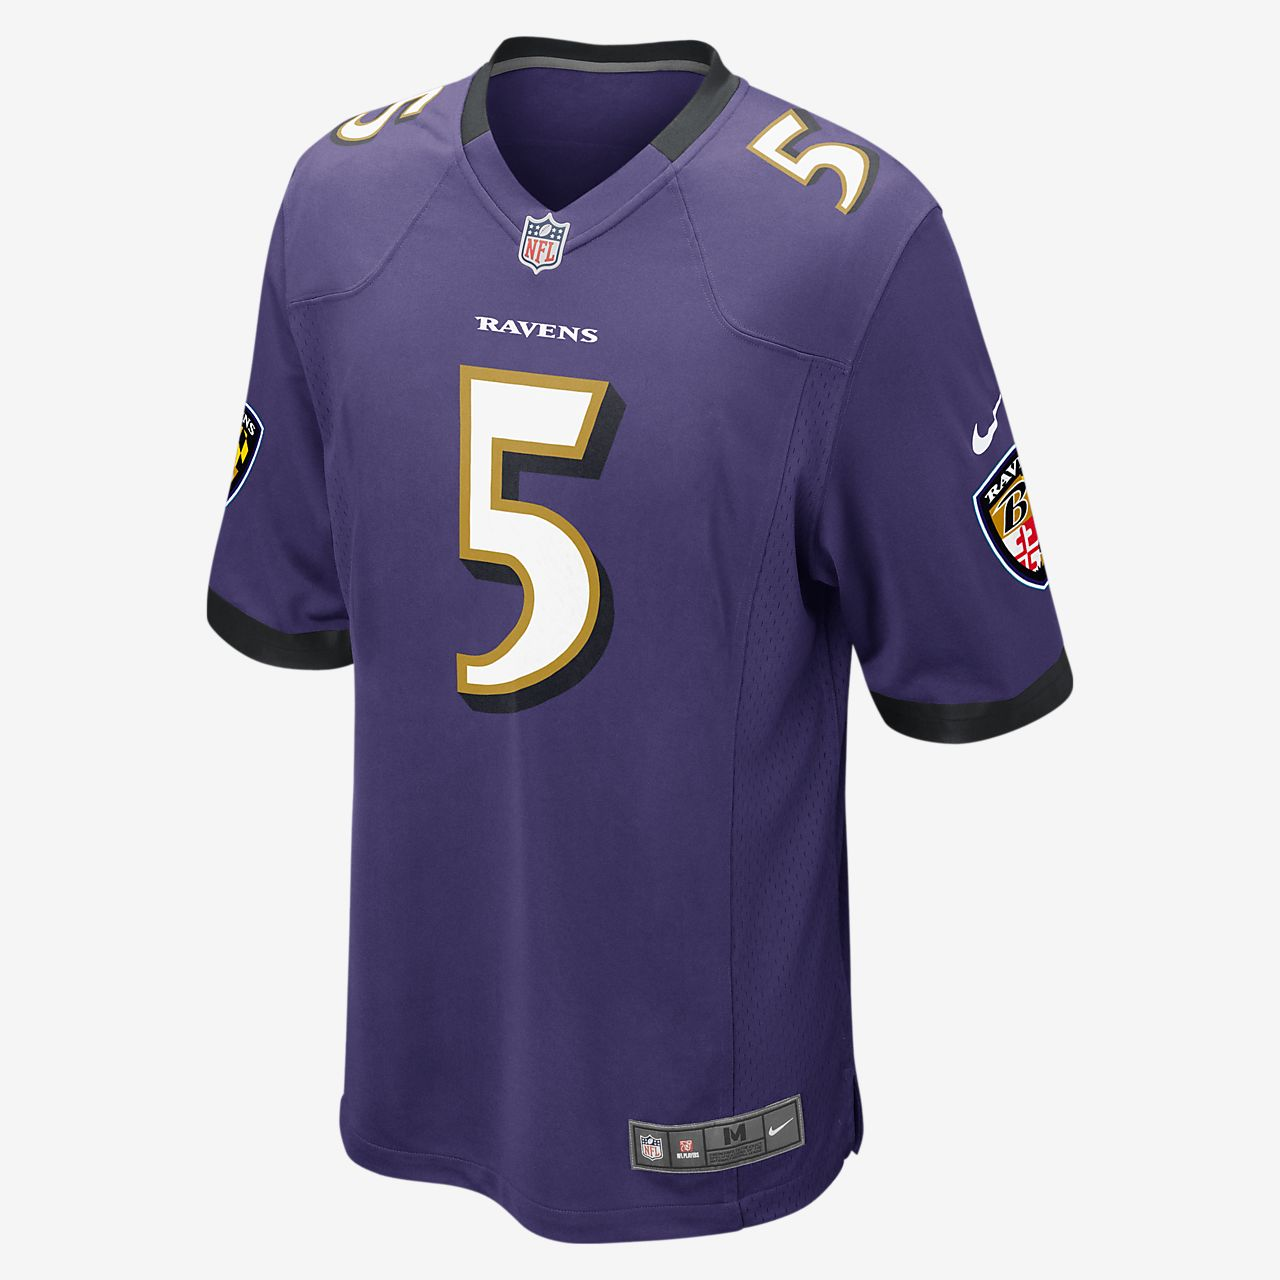 NFL Baltimore Ravens (Joe Flacco) Men's American Football Home Game Jersey